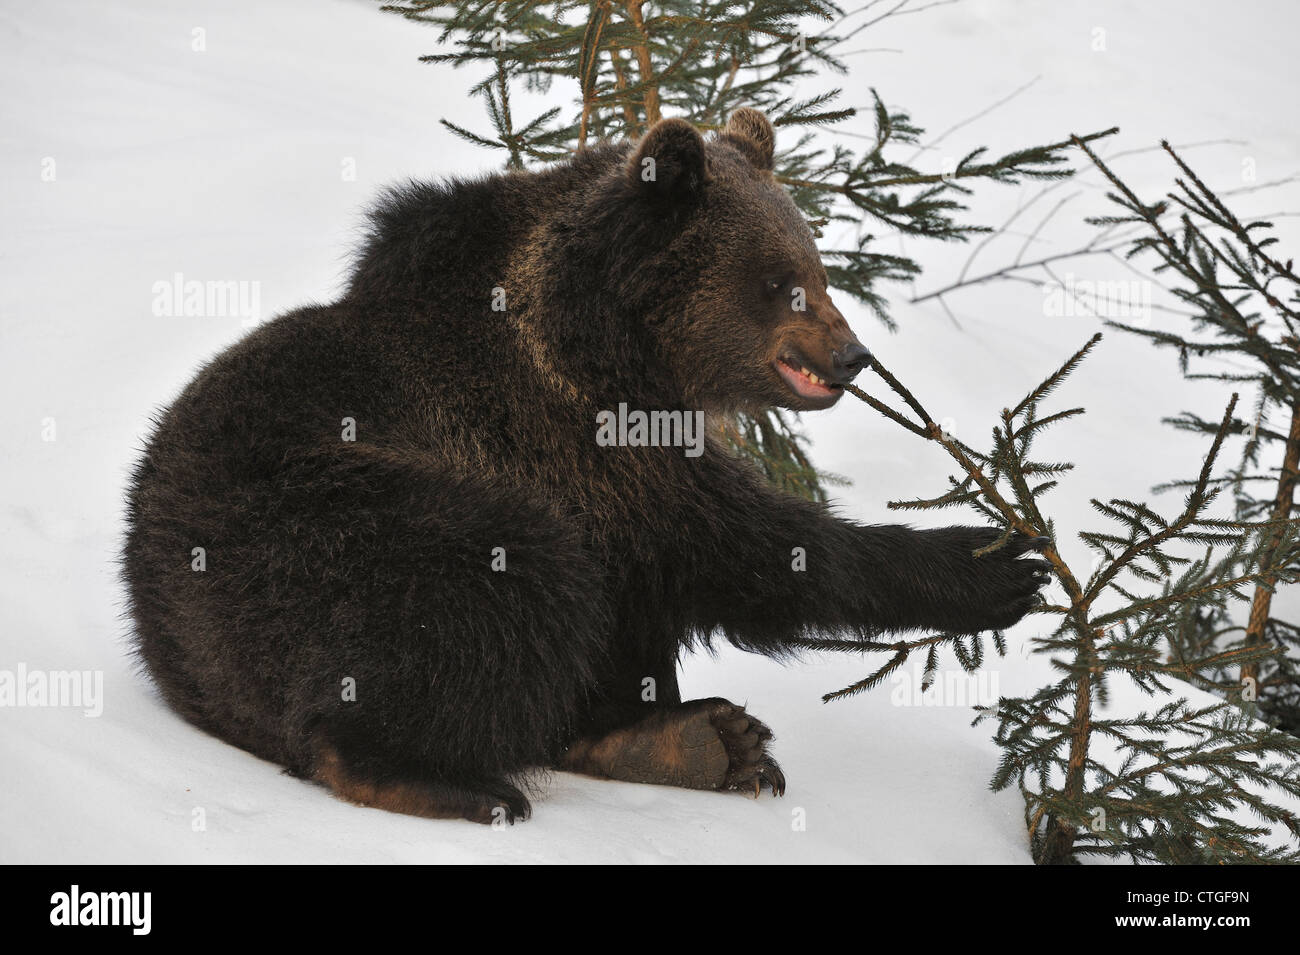 Two-year-old Eurasian brown bear (Ursus arctos arctos) cub playing with twig in the snow in early spring - Stock Image